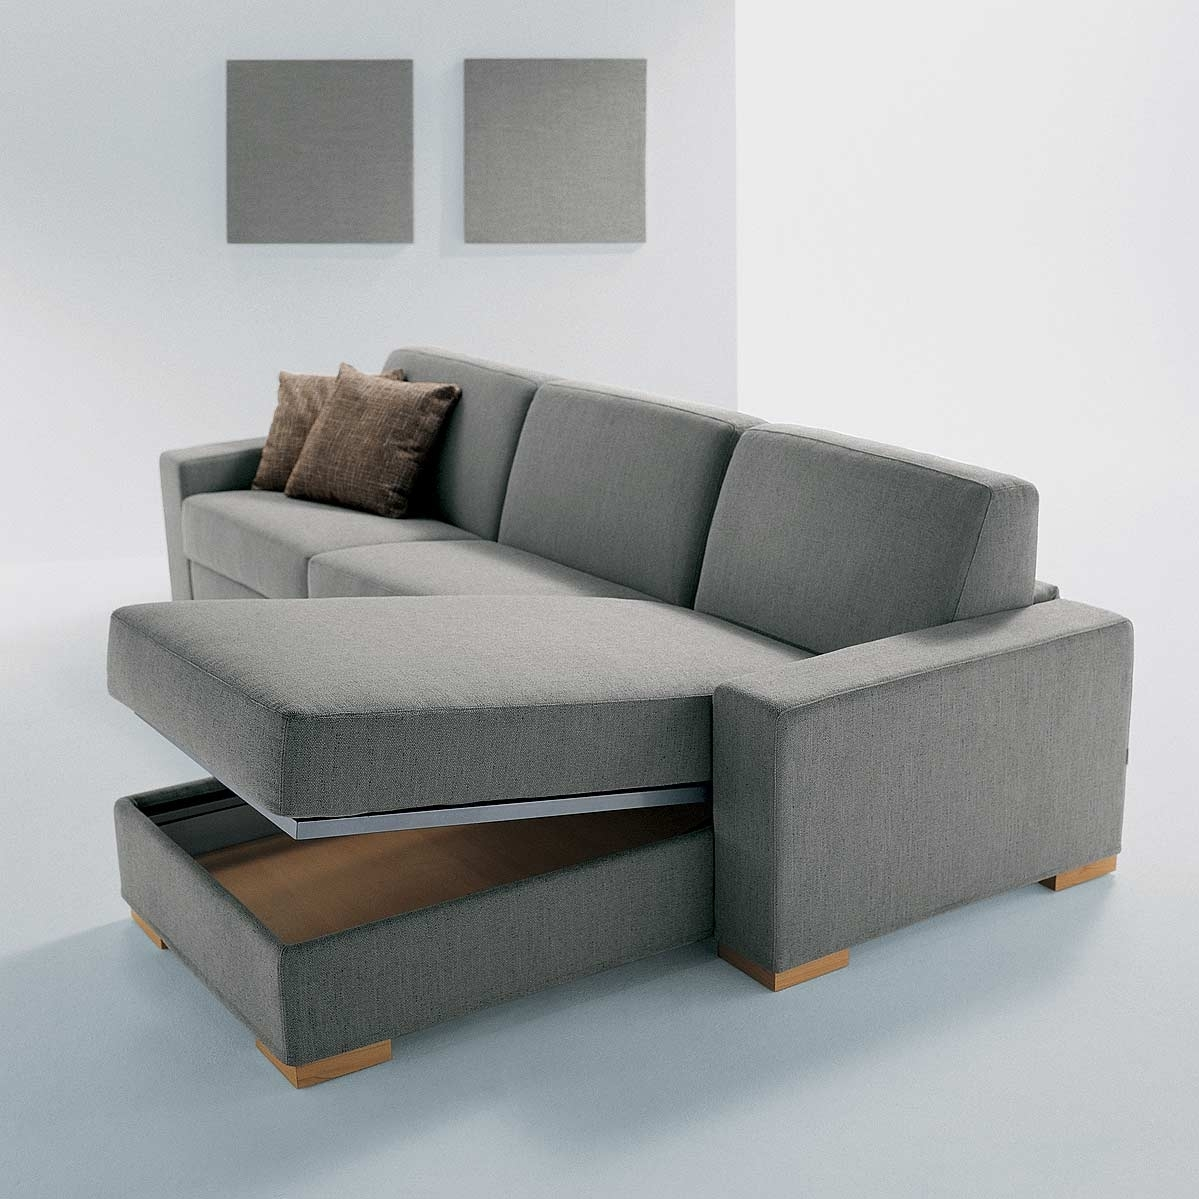 Furniture : Sofa With Drawers Fabric Sectional Sofas With Chaise with Sectional Sofas With Storage (Image 2 of 10)